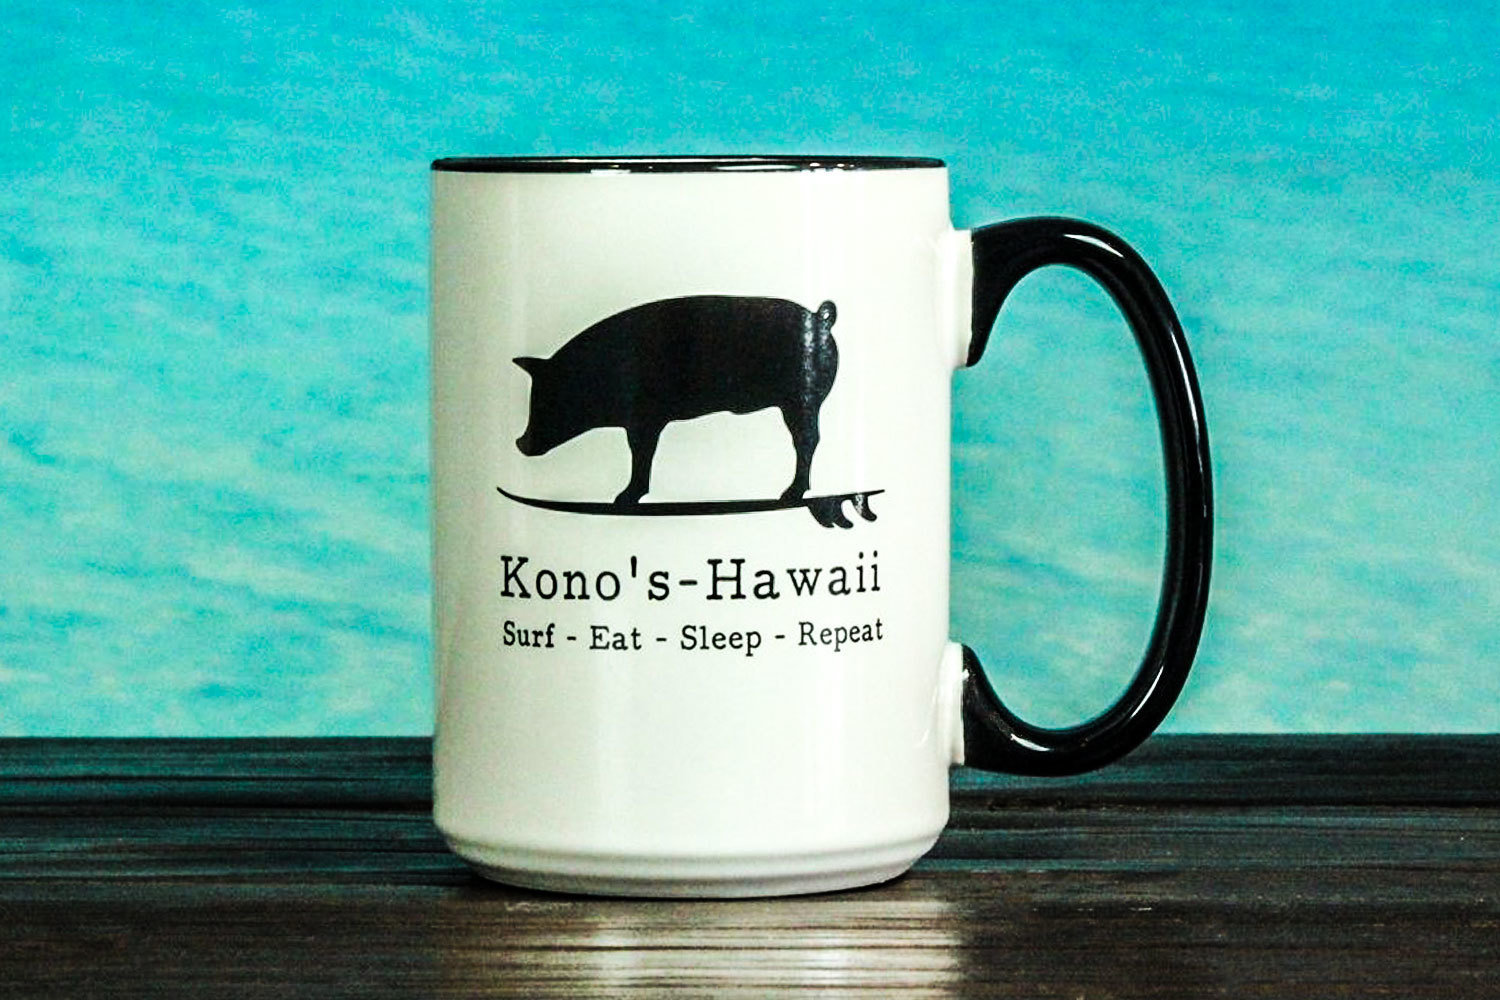 KONO'S SMALL COFFEE MUG